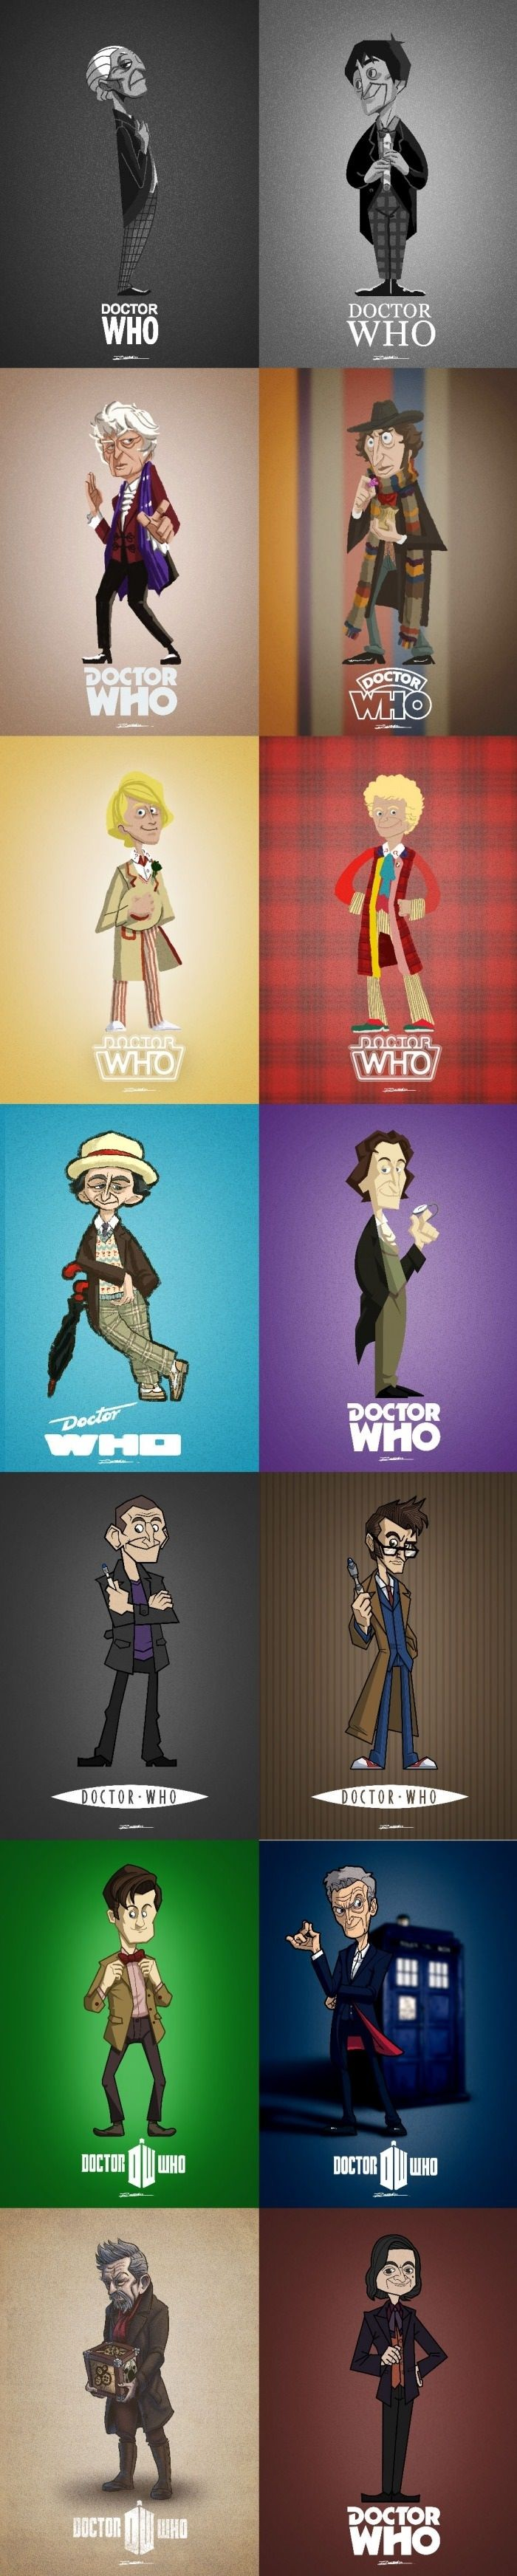 Dr Who cartoon style. Except that last one can just not be included. Doesn't count.